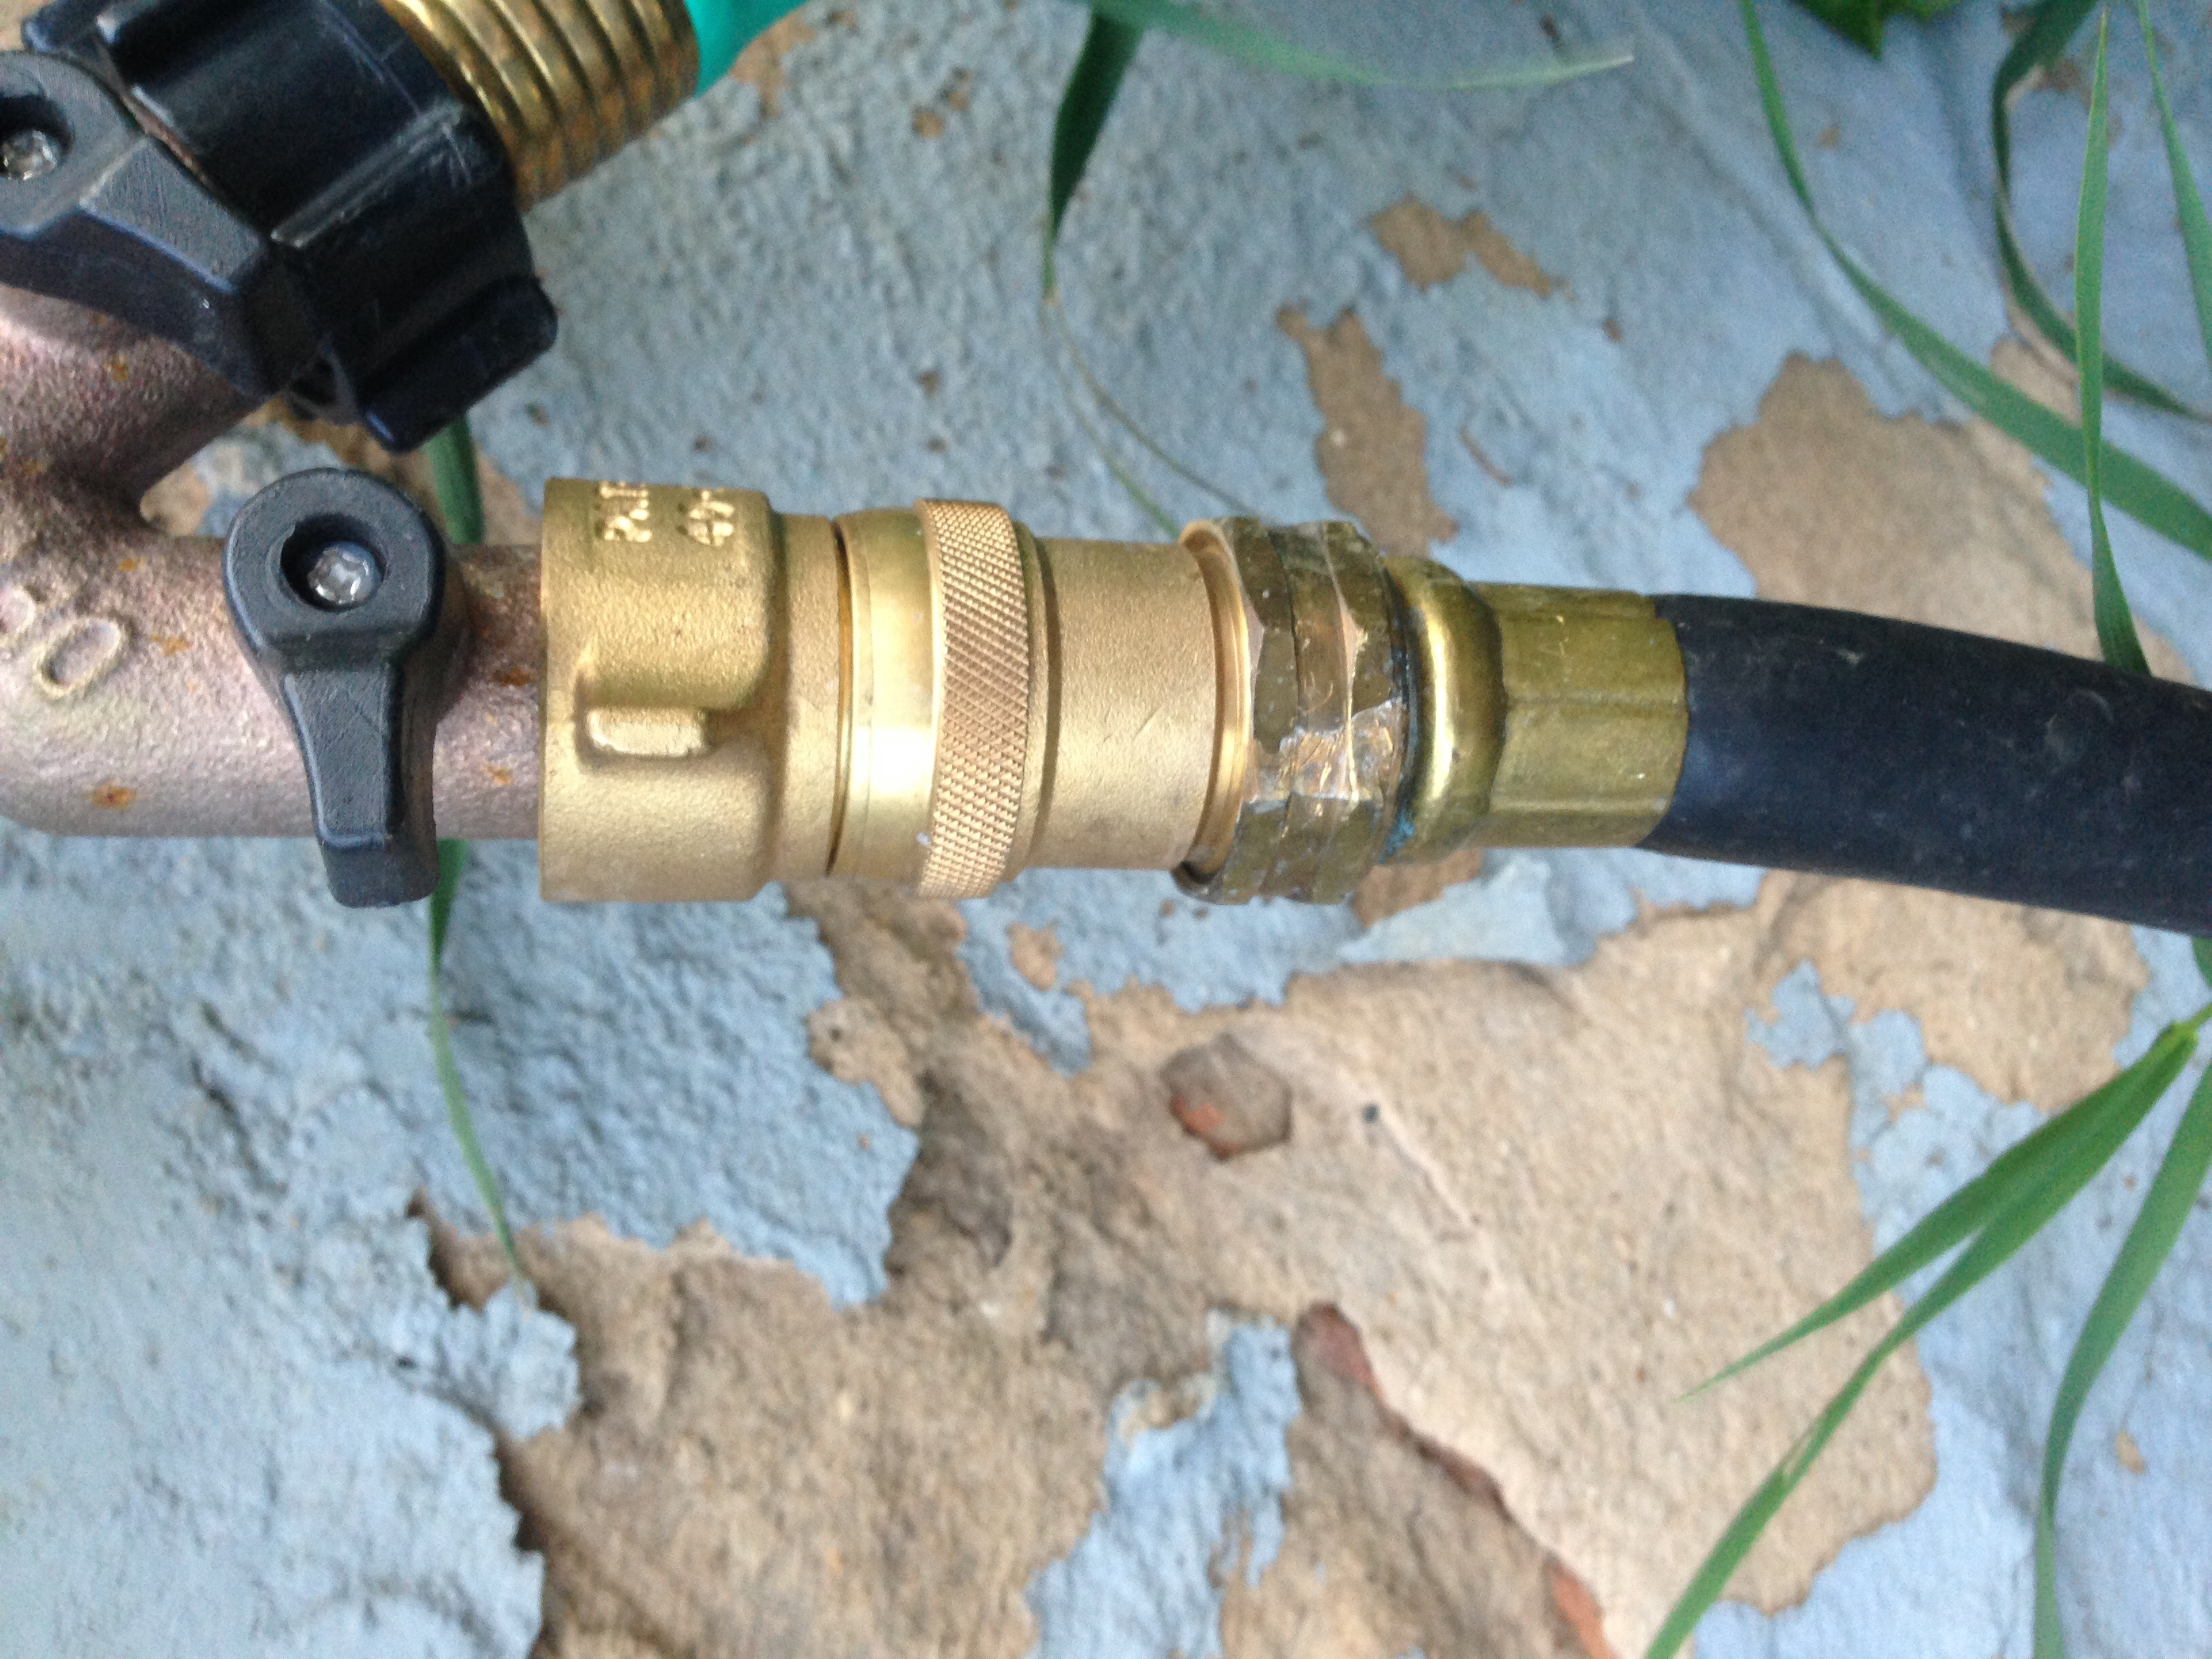 A brass pressure regulator was where I started, which made the leaks less frequent.